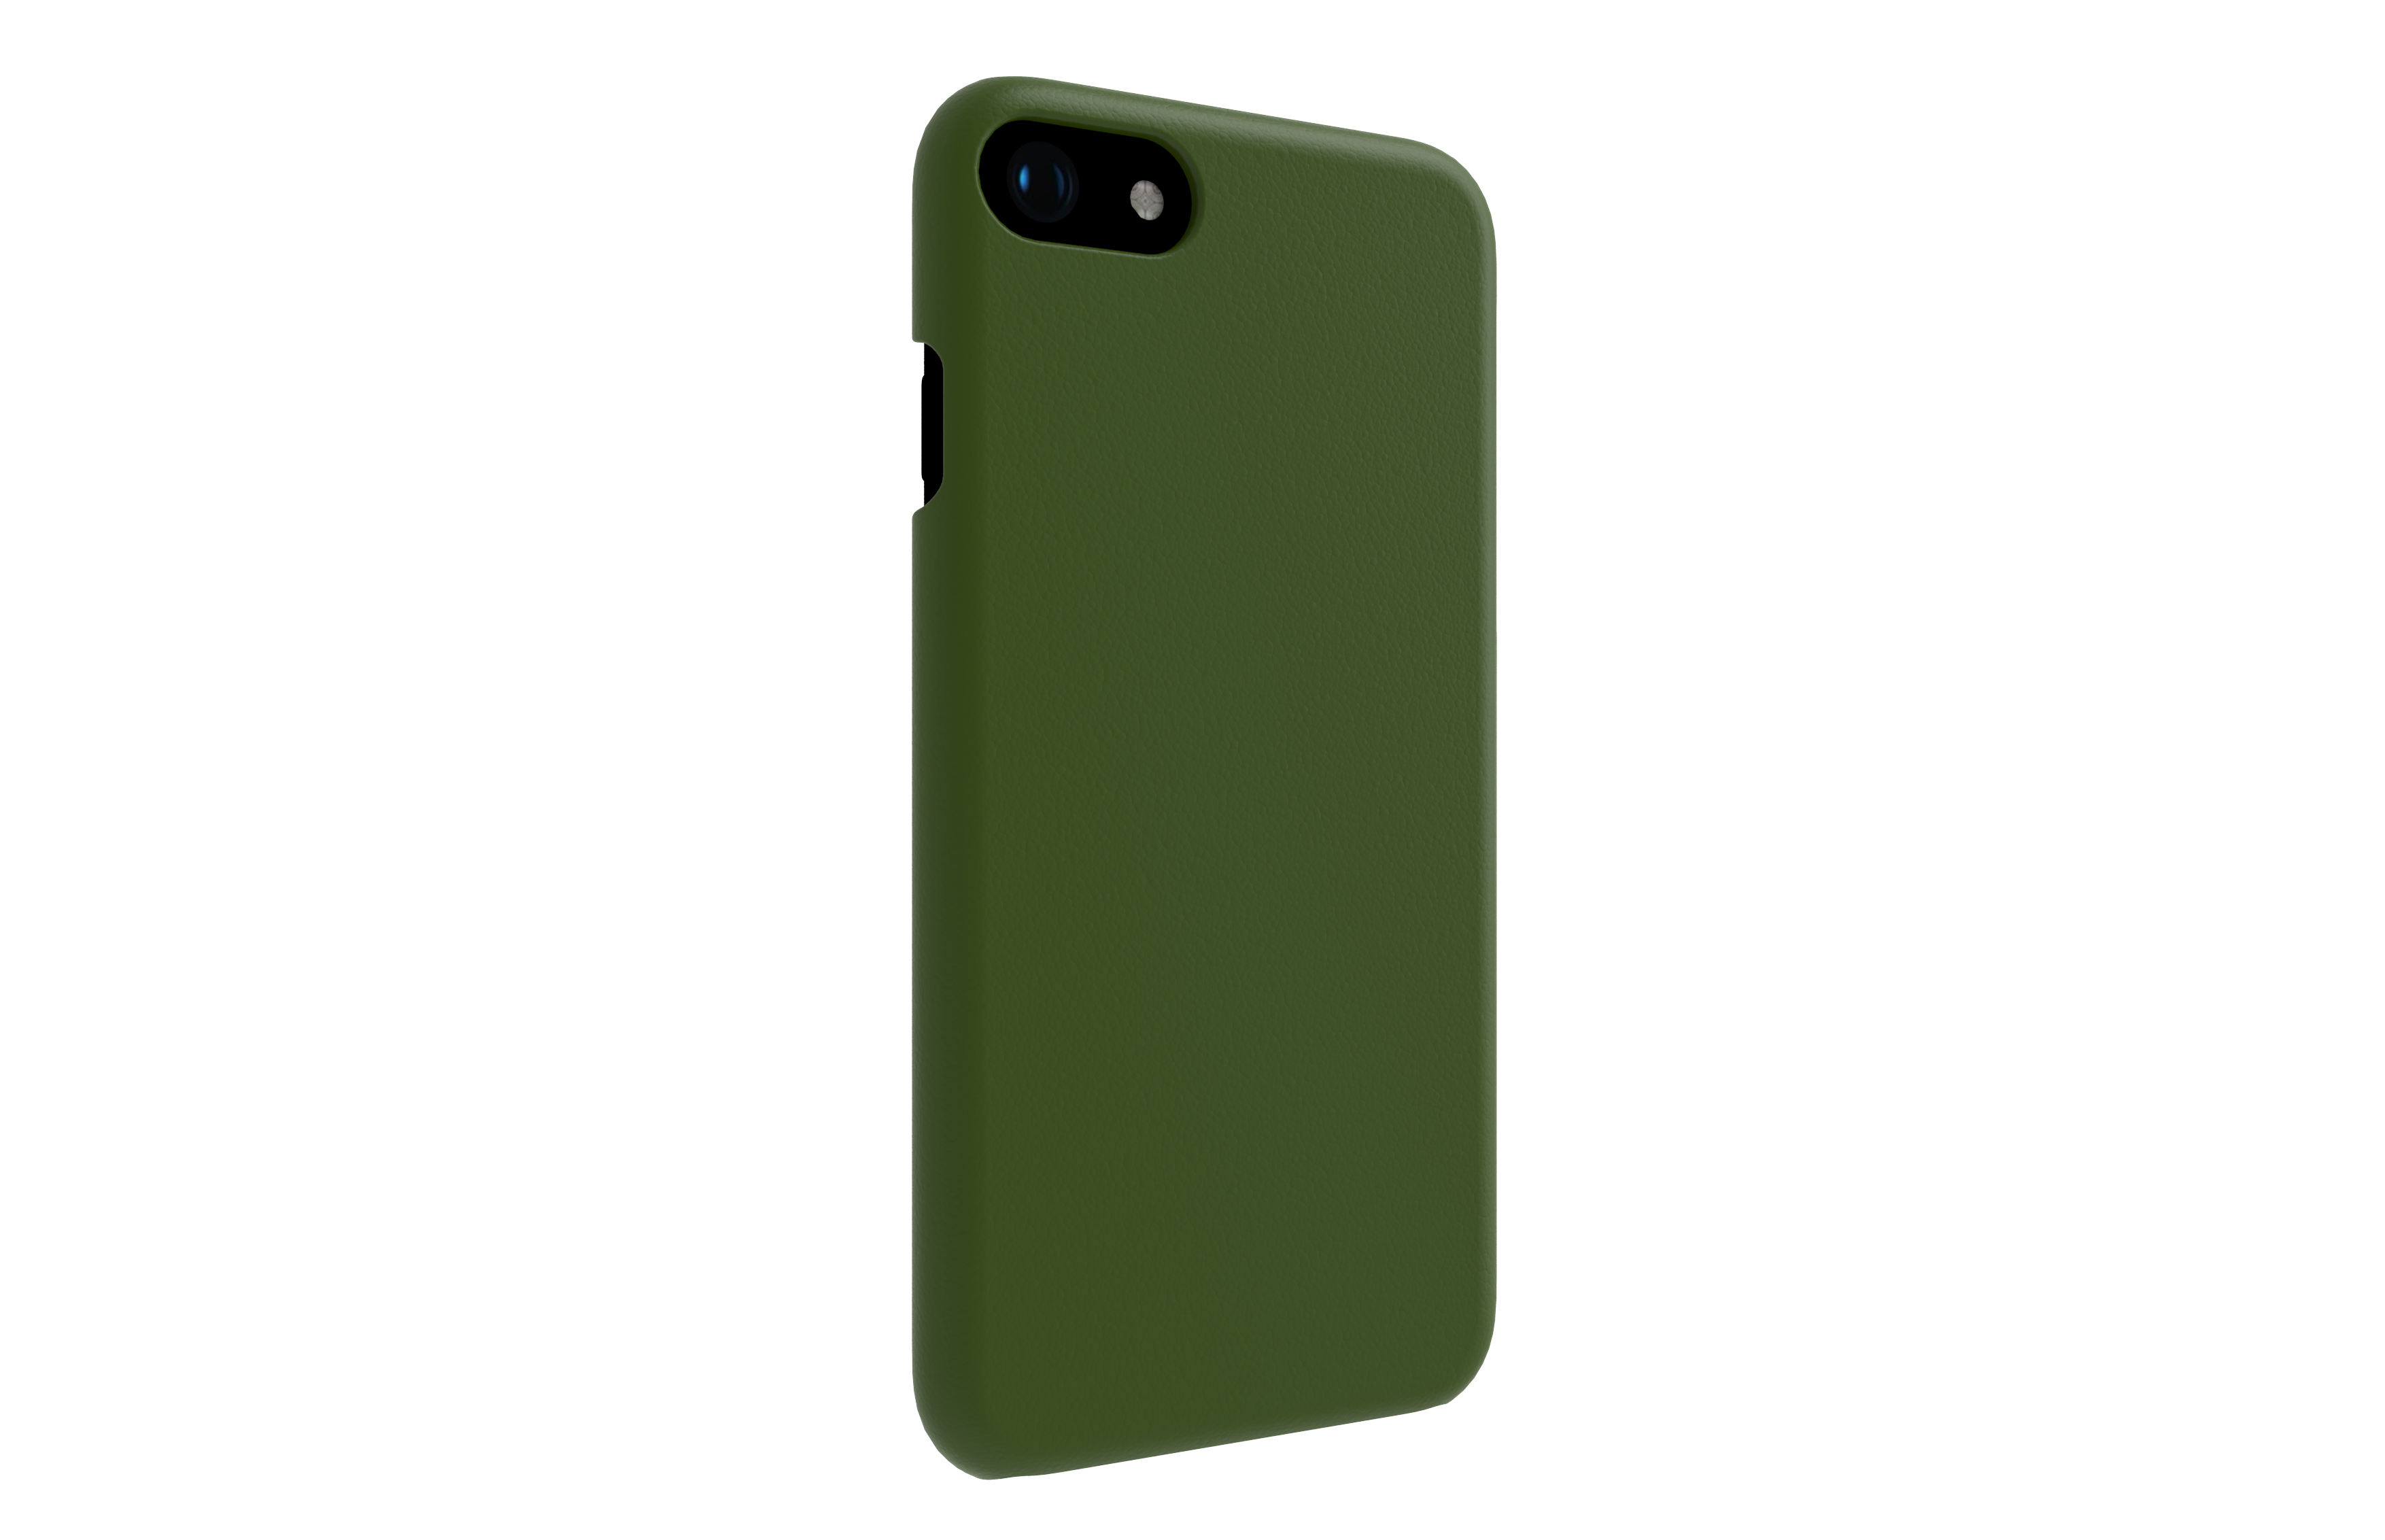 iphone4.7 green-3